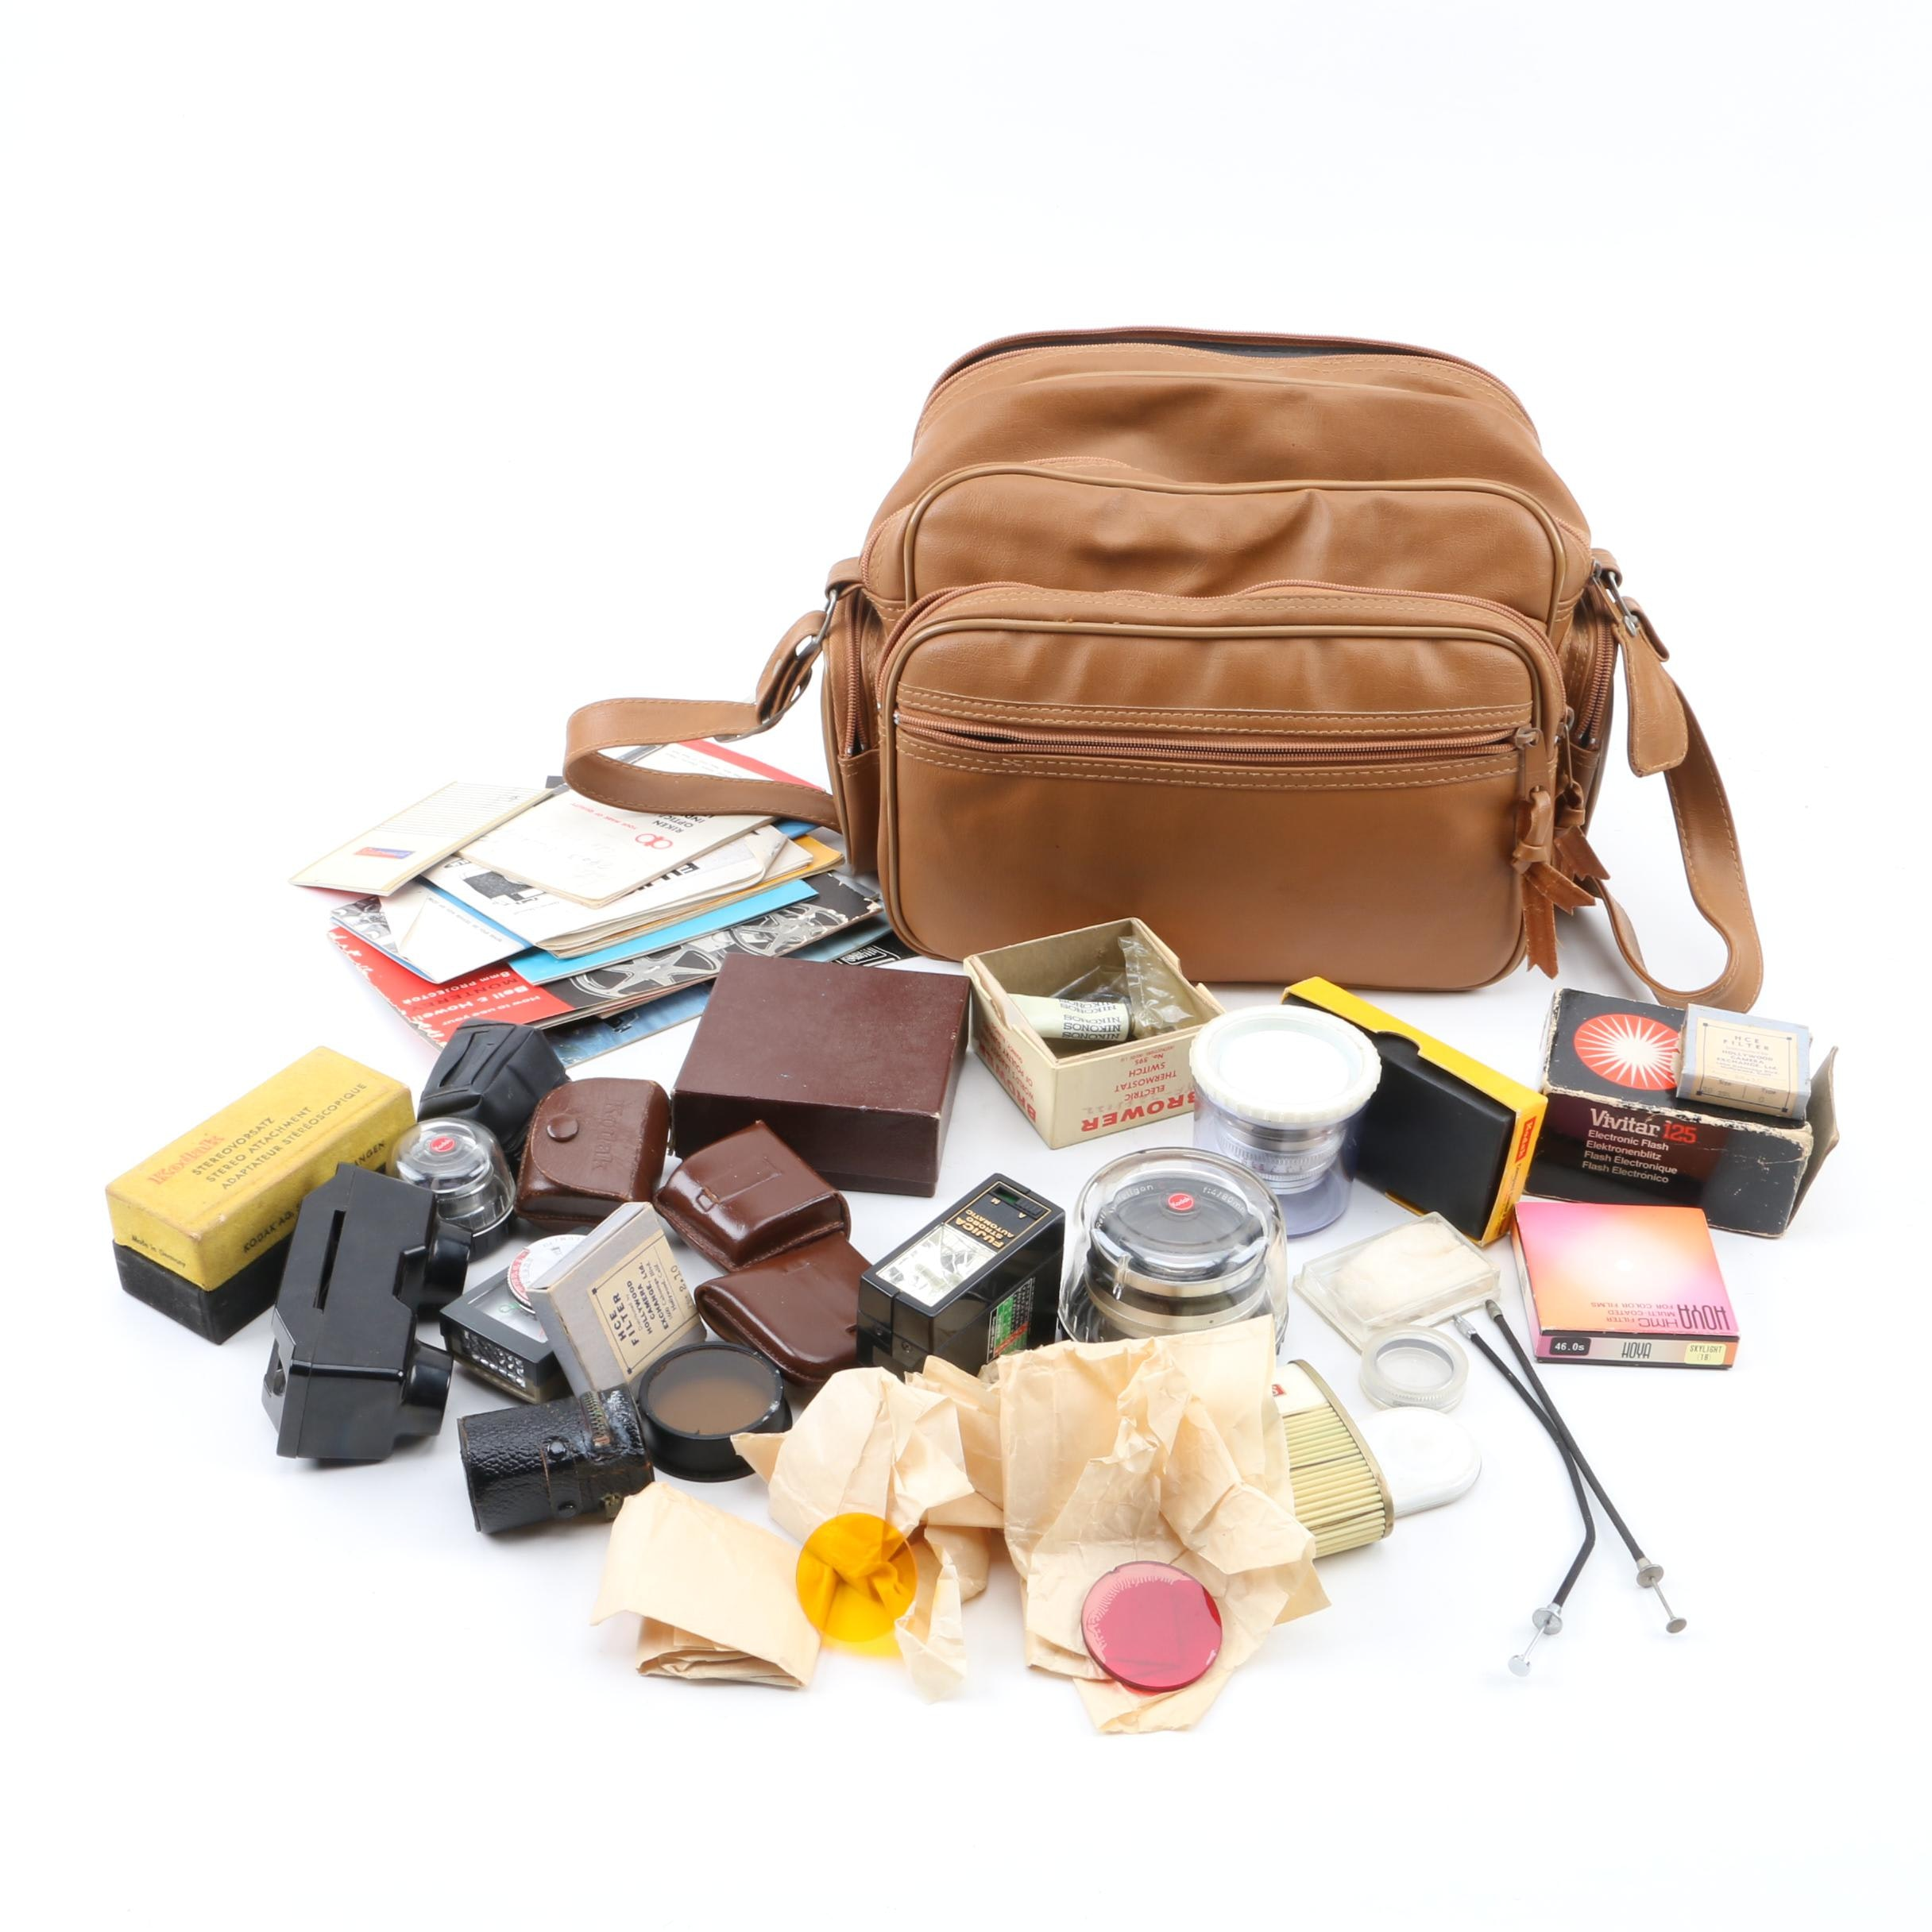 Vintage Camera Bag and Photography Accessories